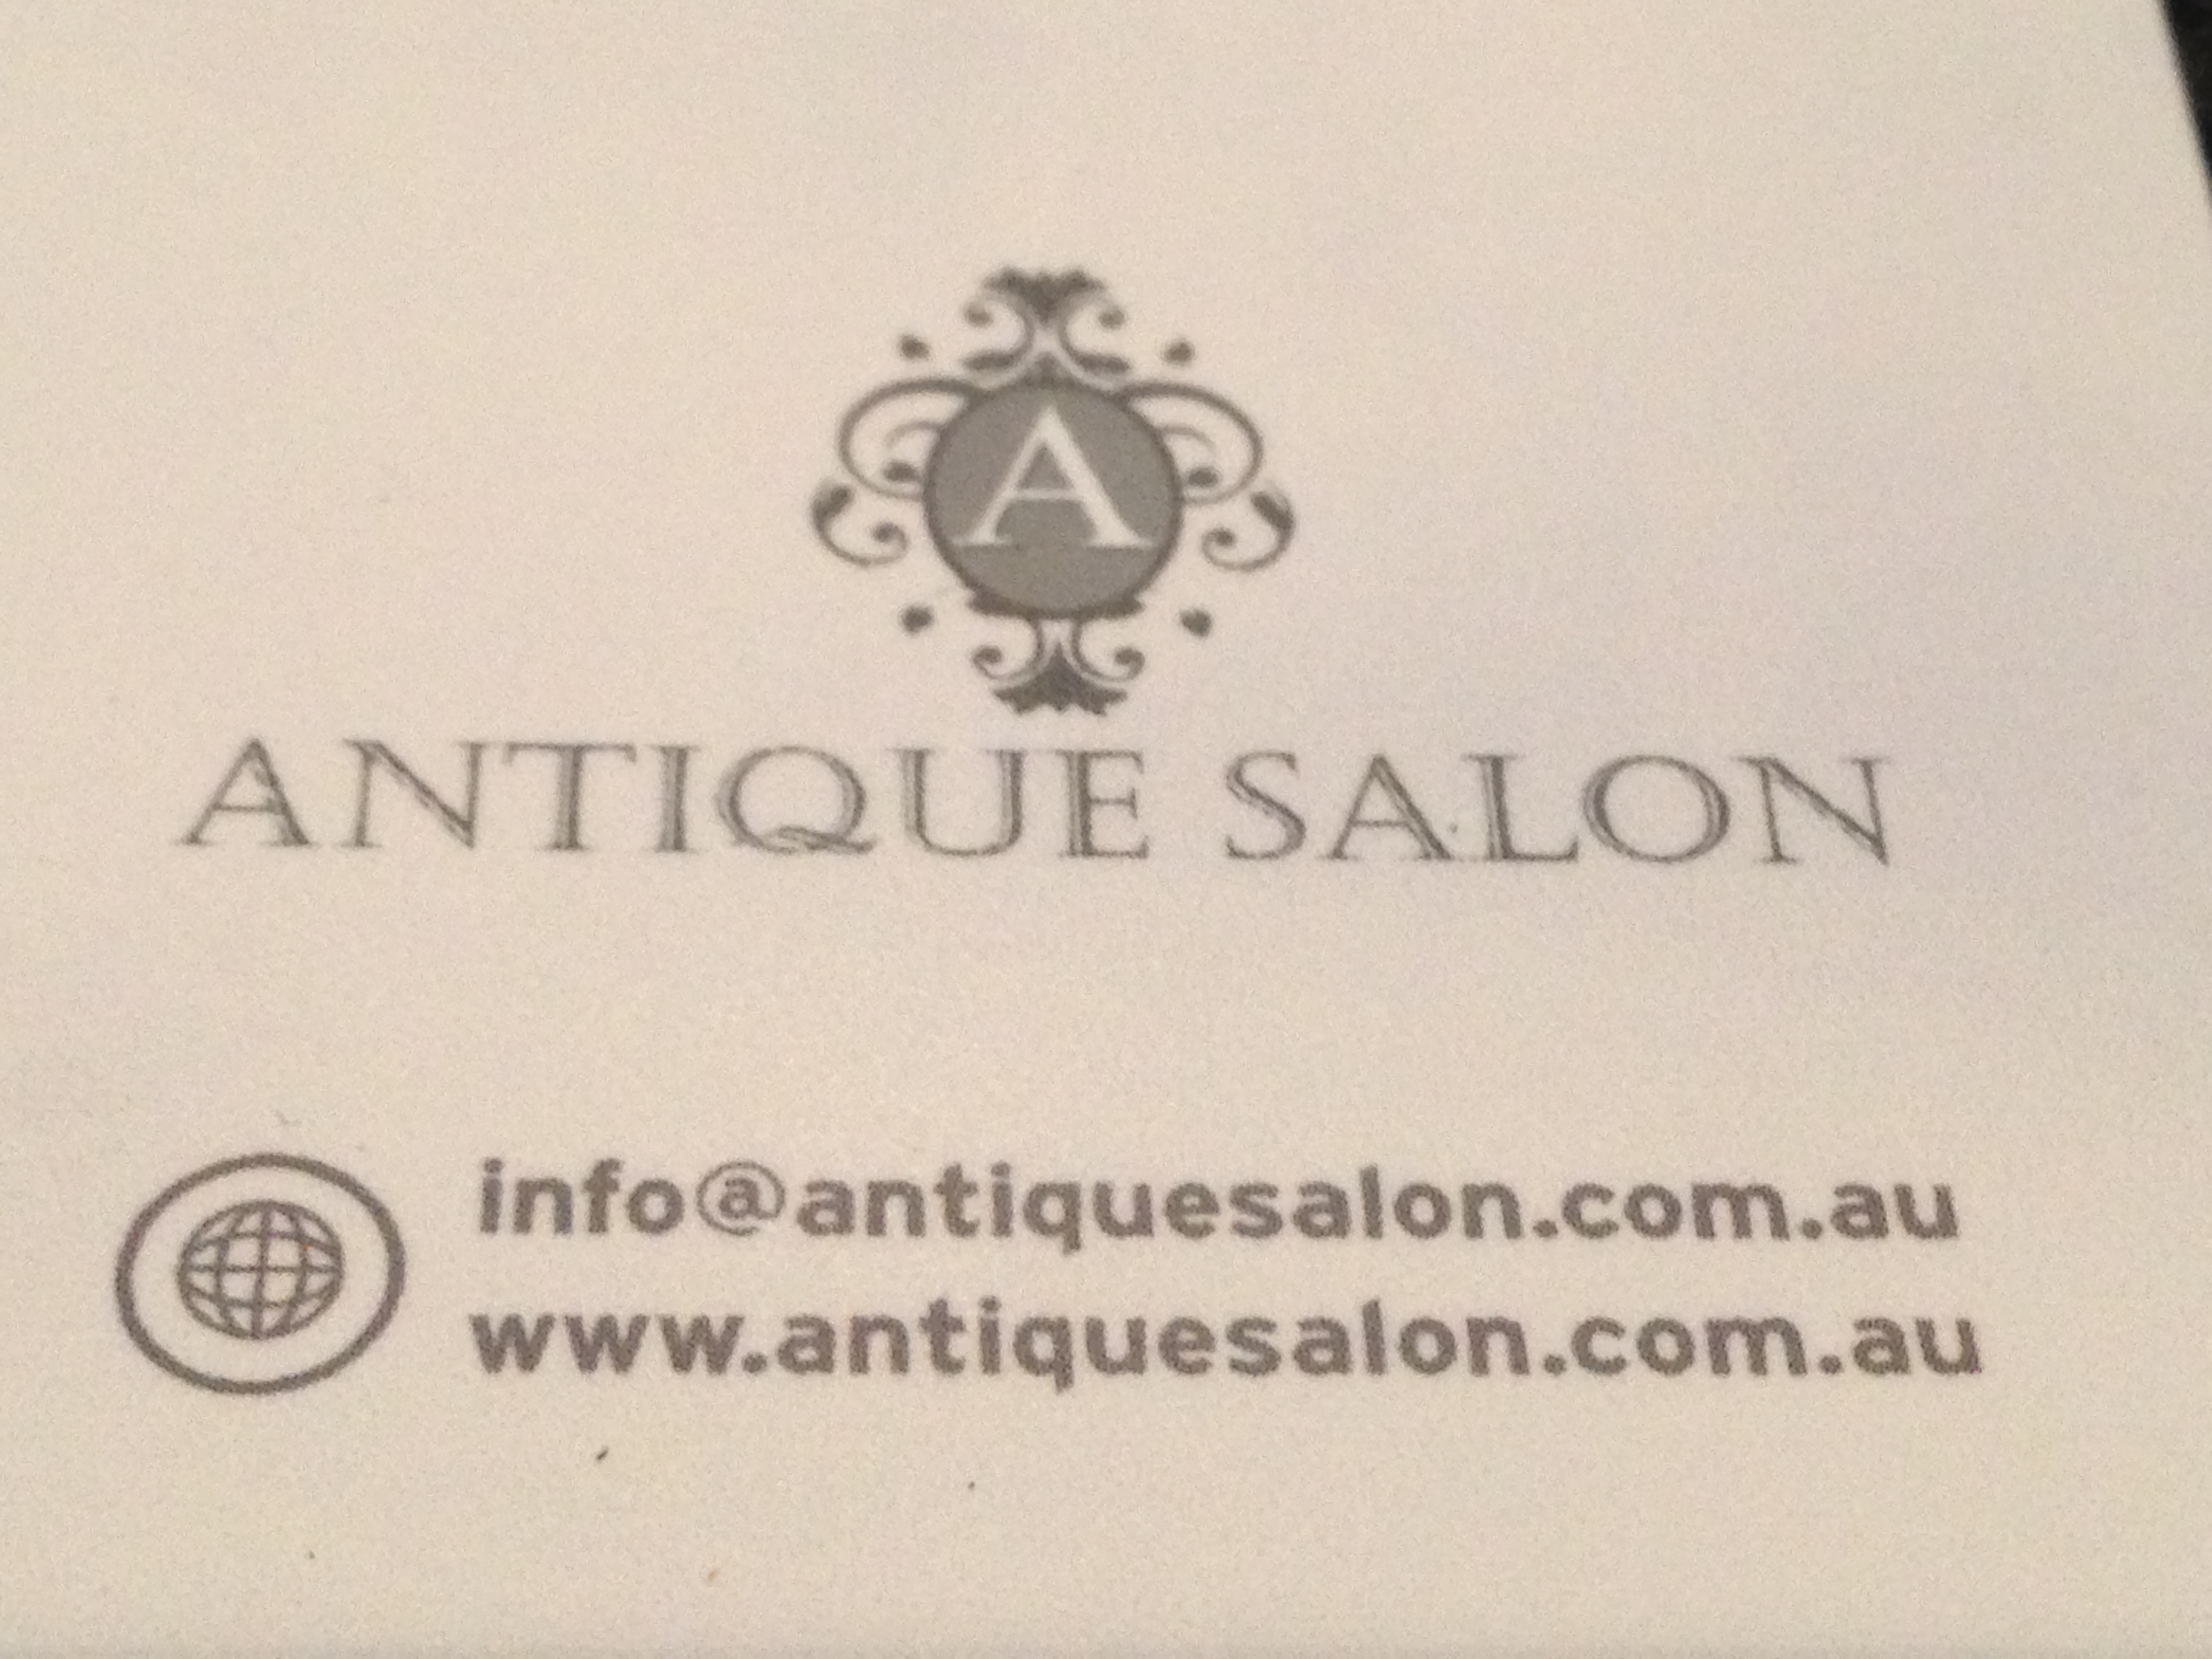 Antique Salon Bonner